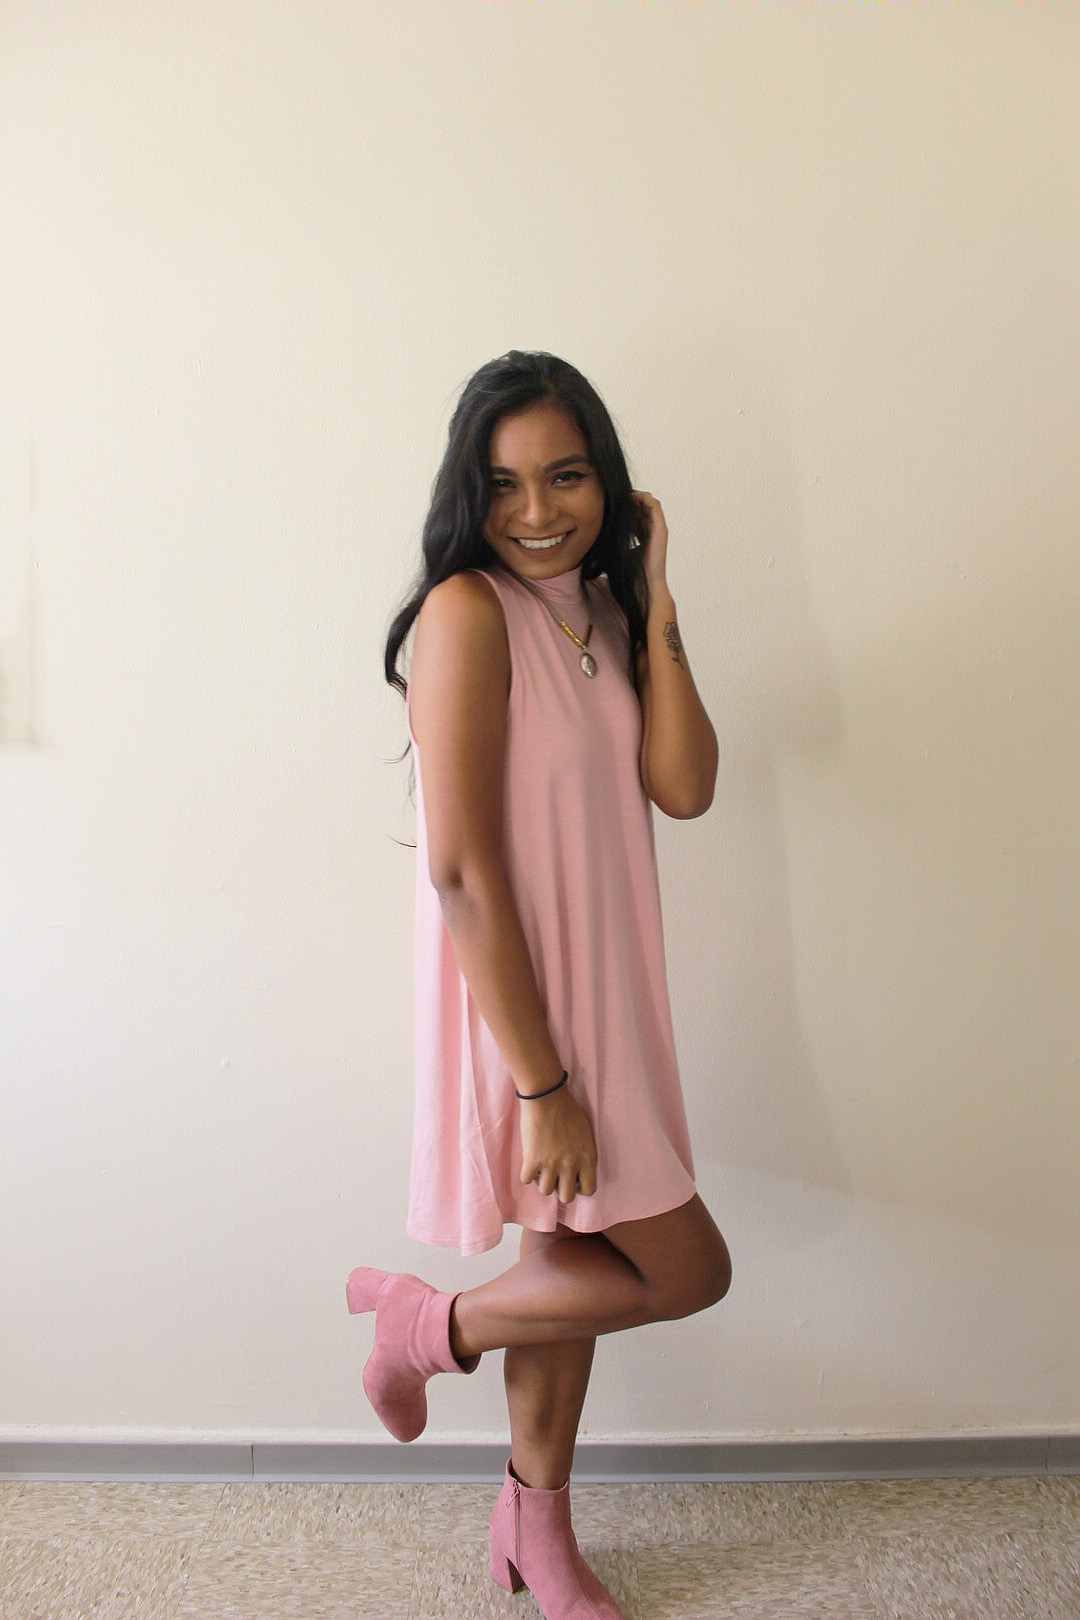 Pink-on-pink-style-blogger-fashionista-LINDATENCHITRAN-6-1616x1080